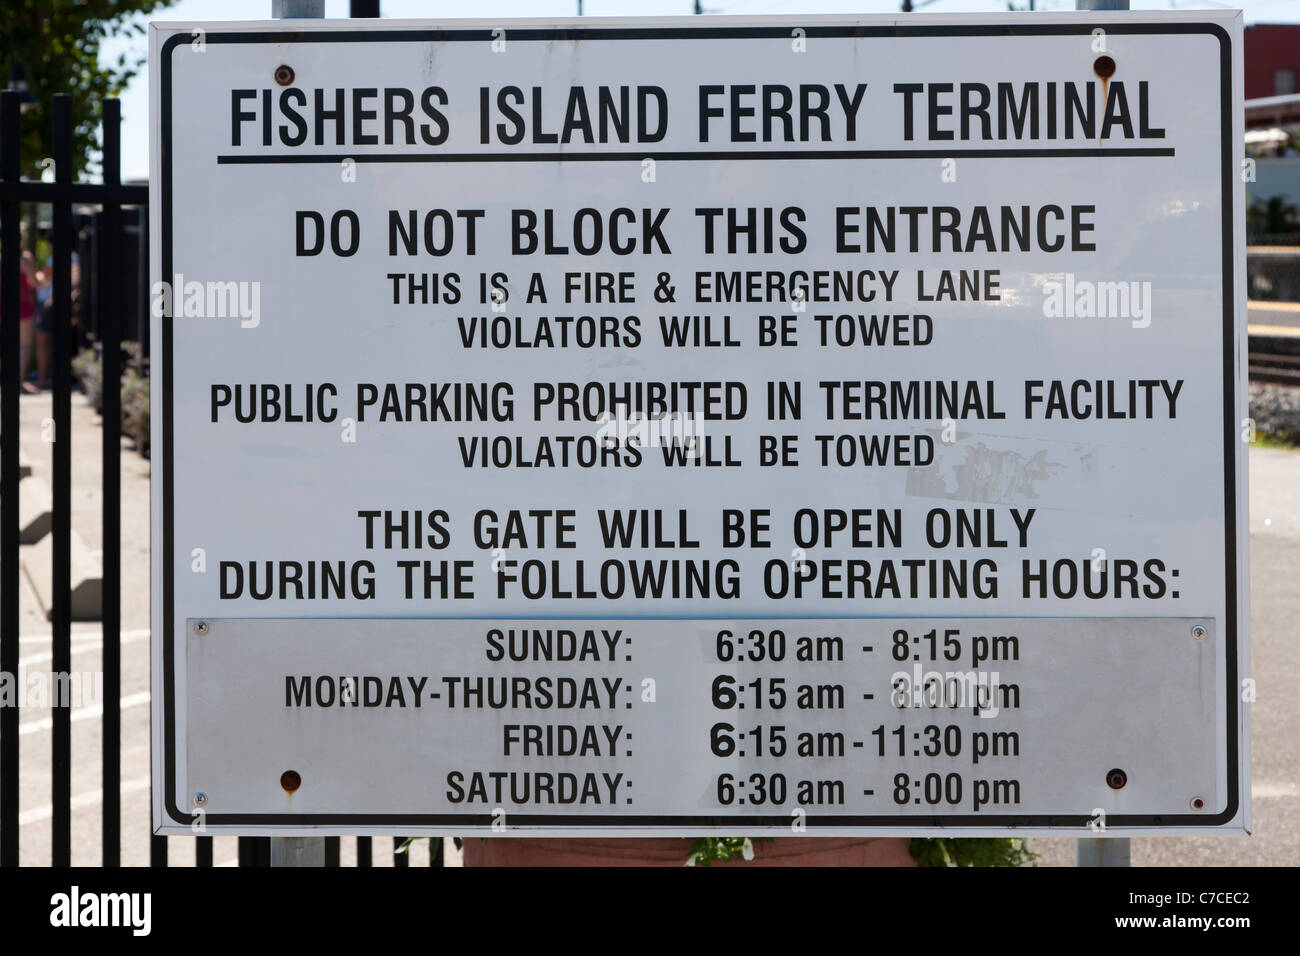 Entrance sign for the Fishers Island Ferry Terminal in New London, Connecticut. - Stock Image